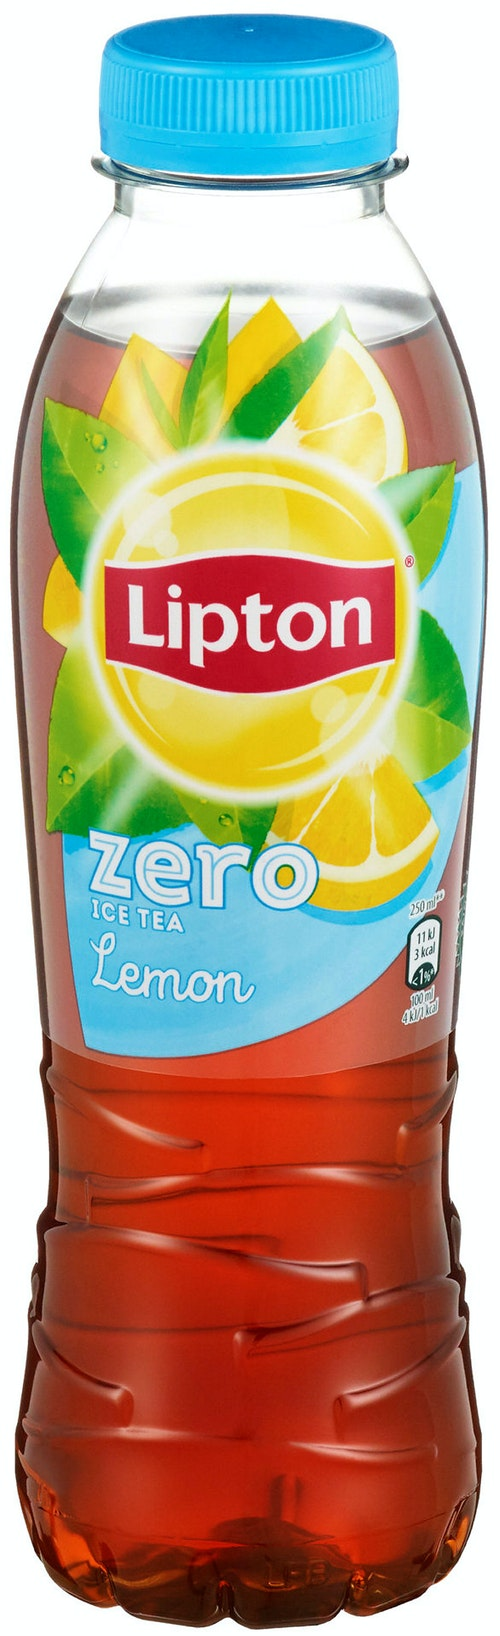 Lipton Lemon Zero Ice Tea 0,5 l